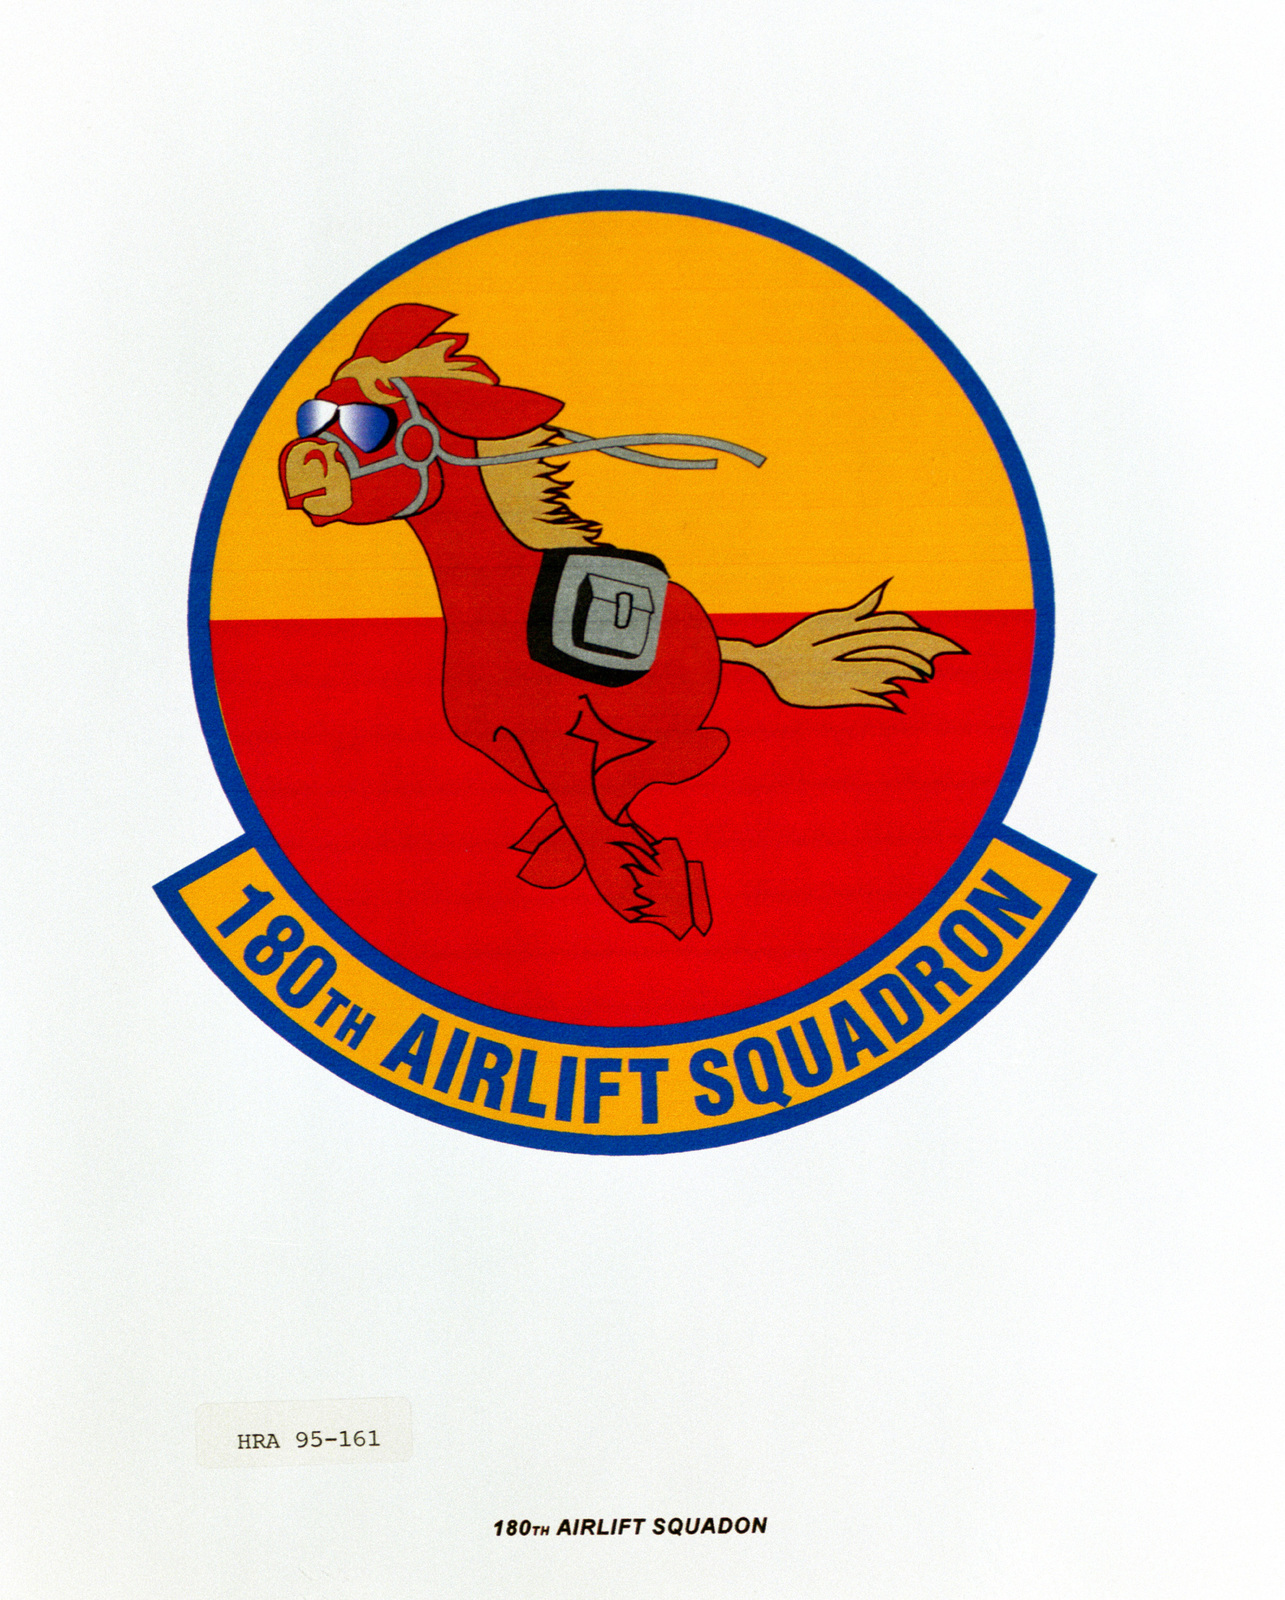 Approved Insignia for the 180th Airlift Squadron. Exact Date Shot Unknown